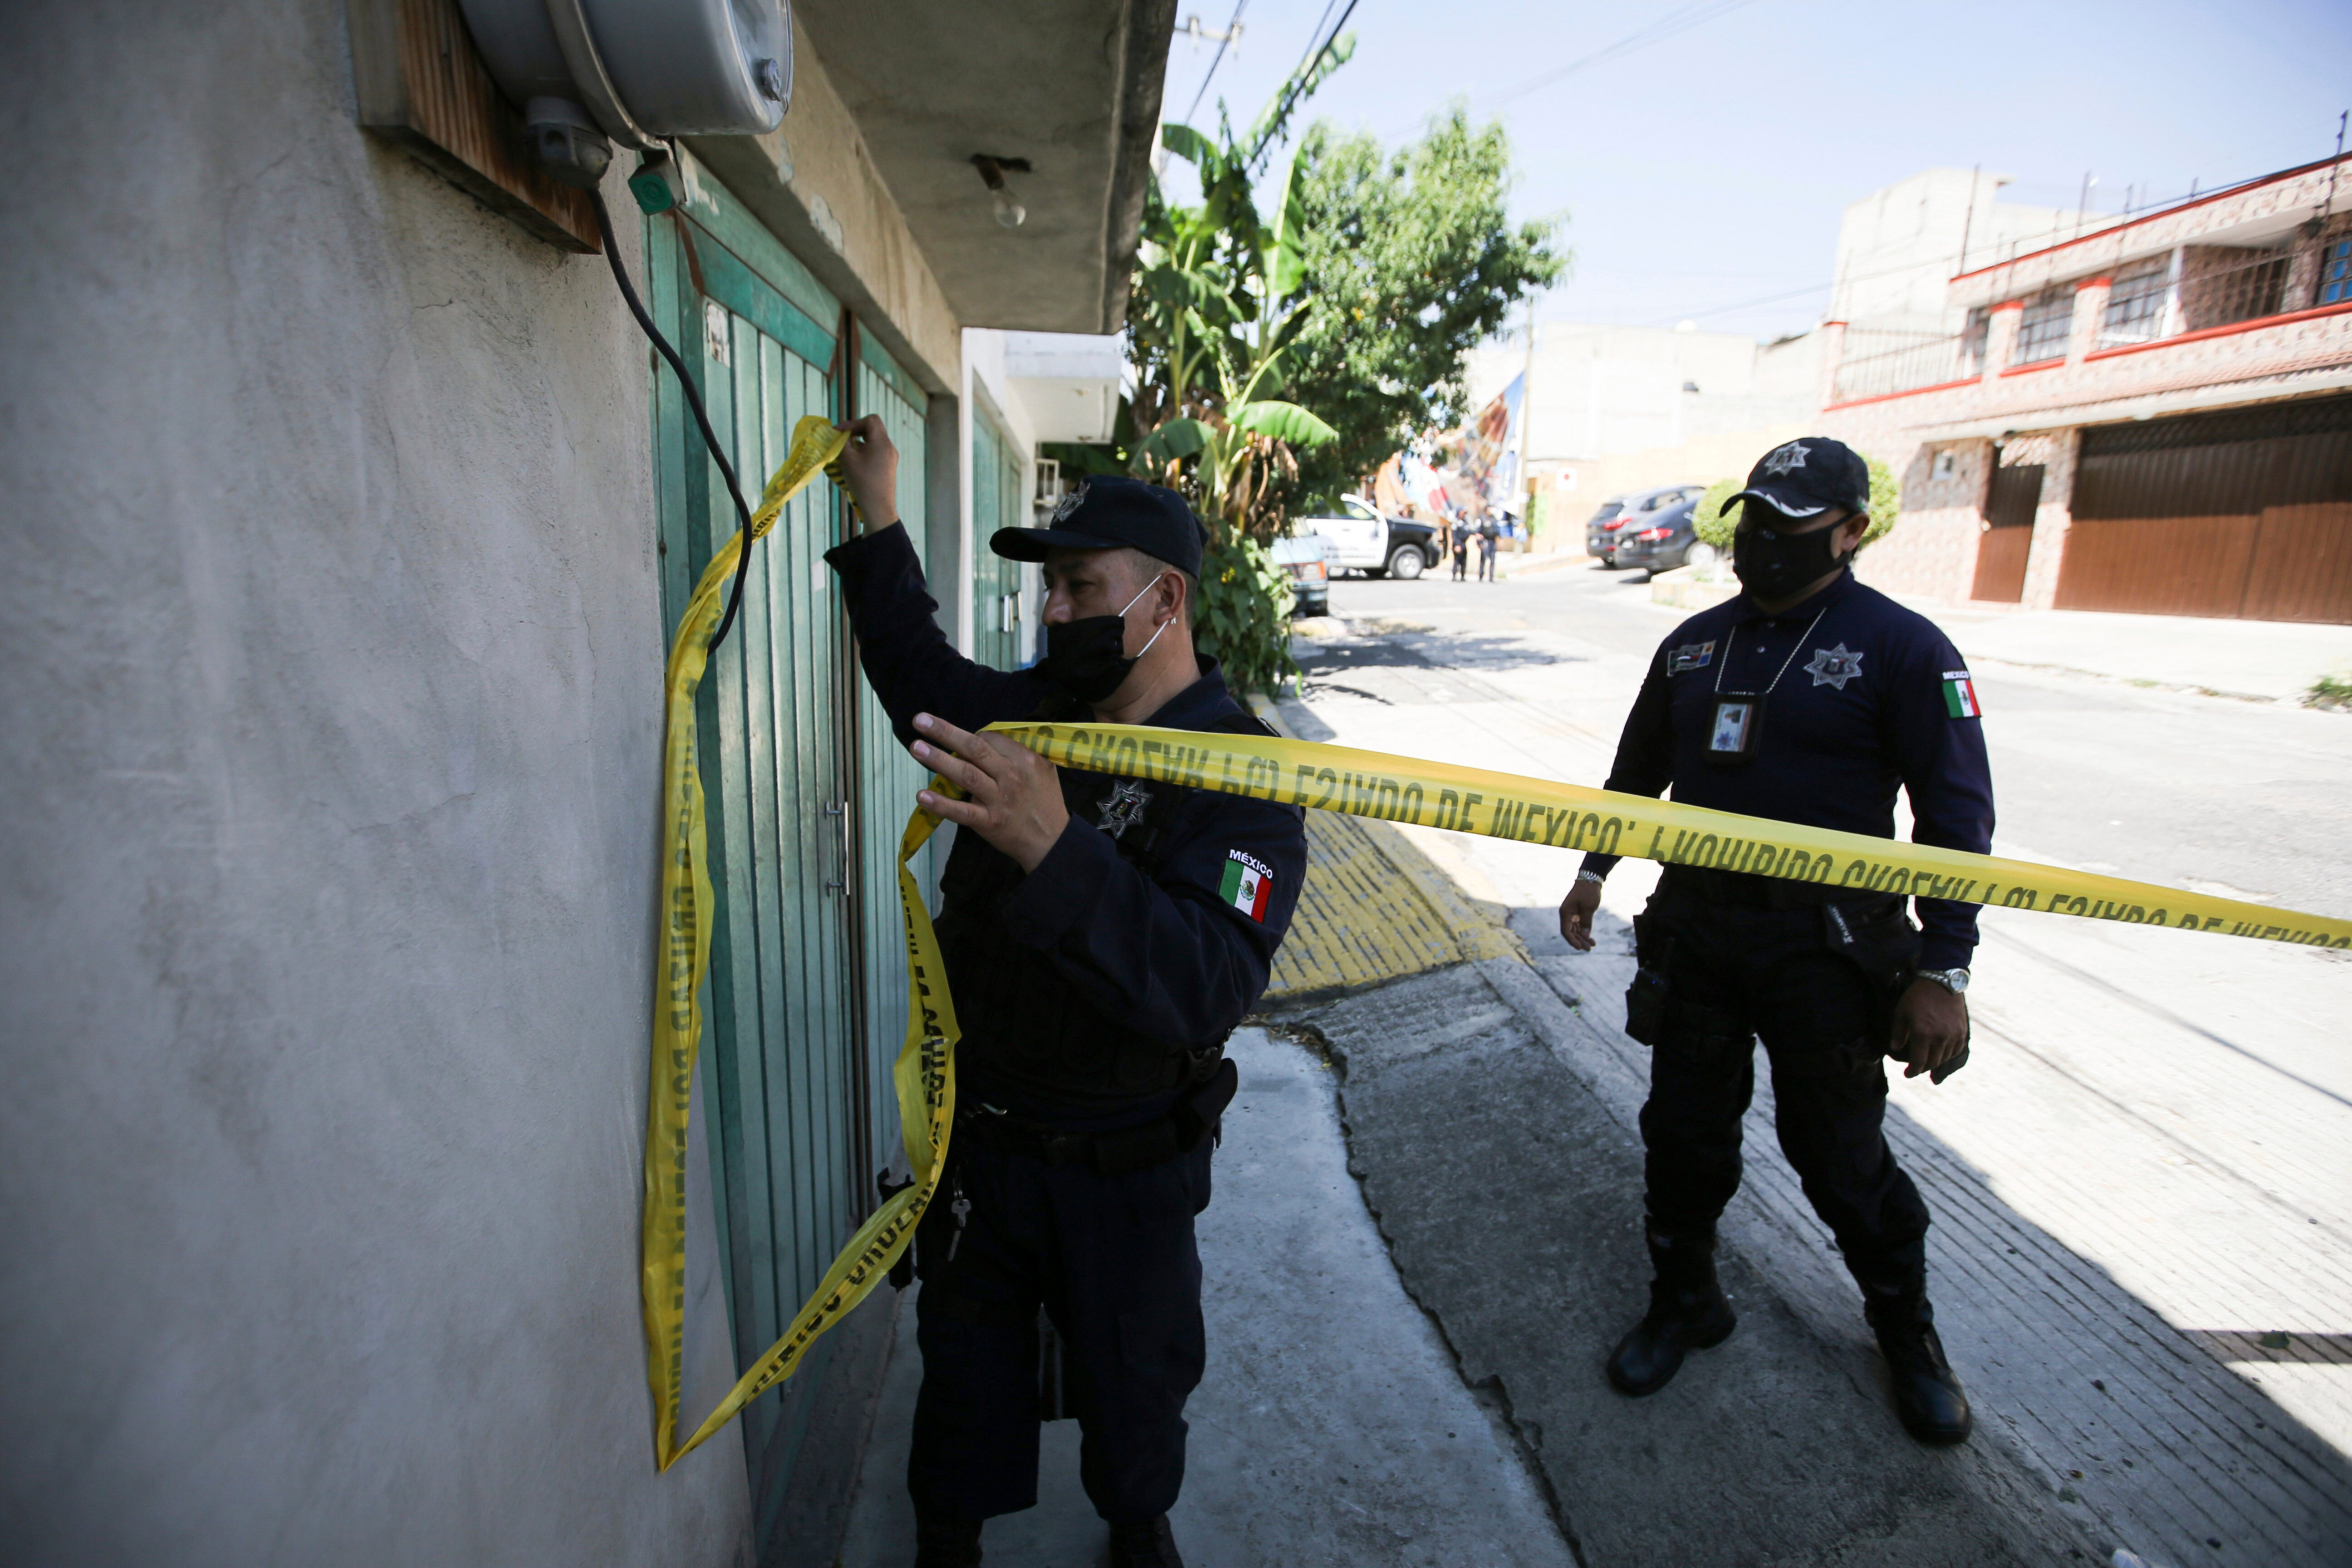 Evidence in Mexico serial killer's house suggests 17 victims 2